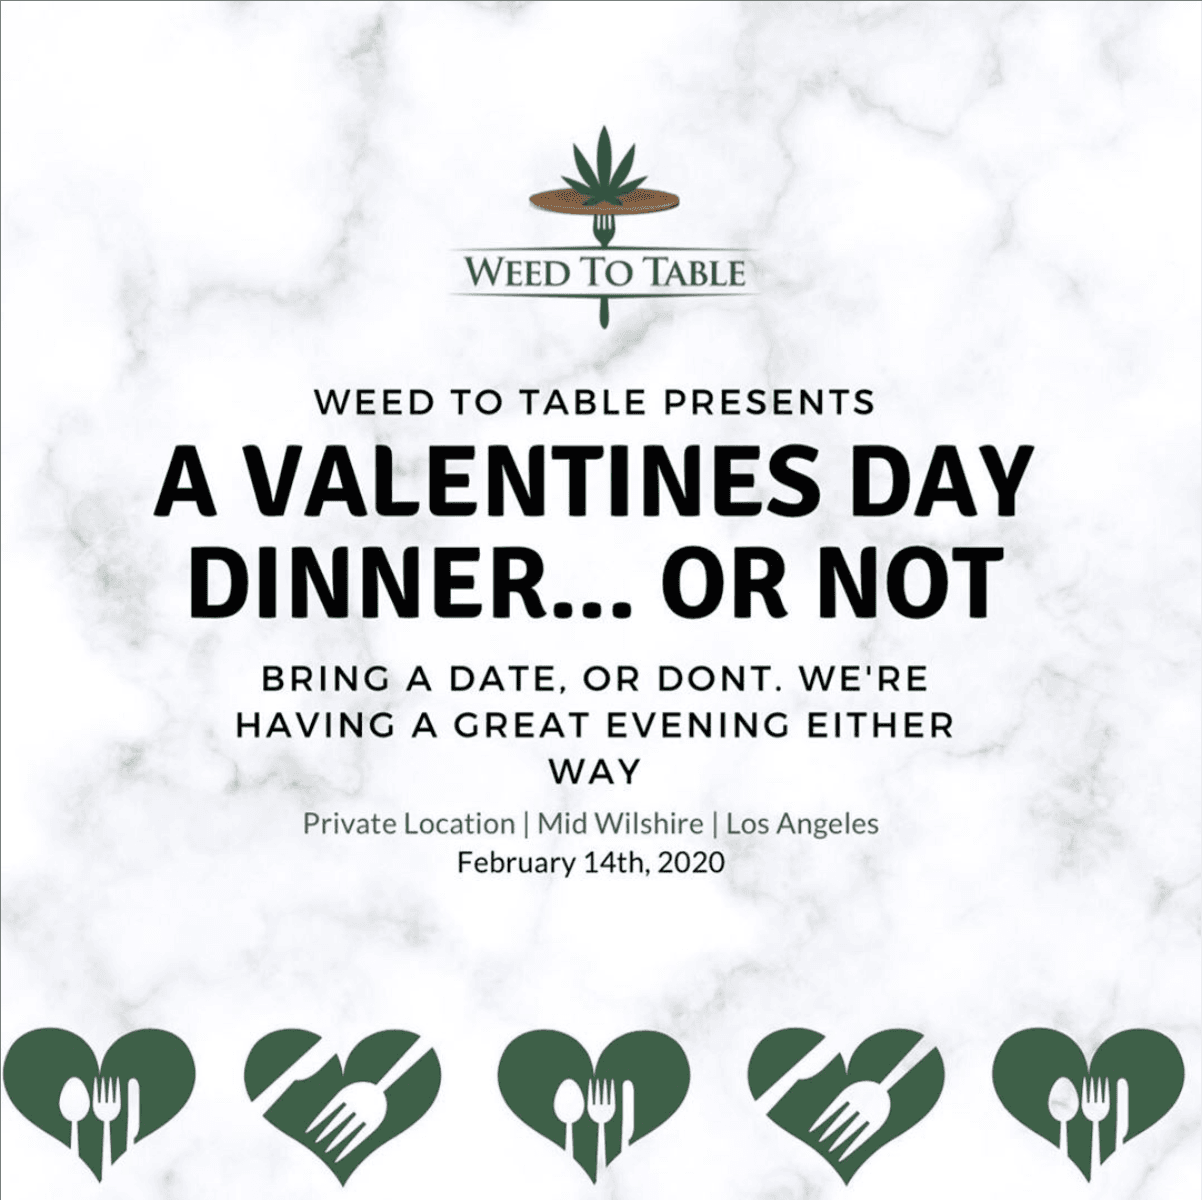 Weed To Table's Valentine's Day Dinner